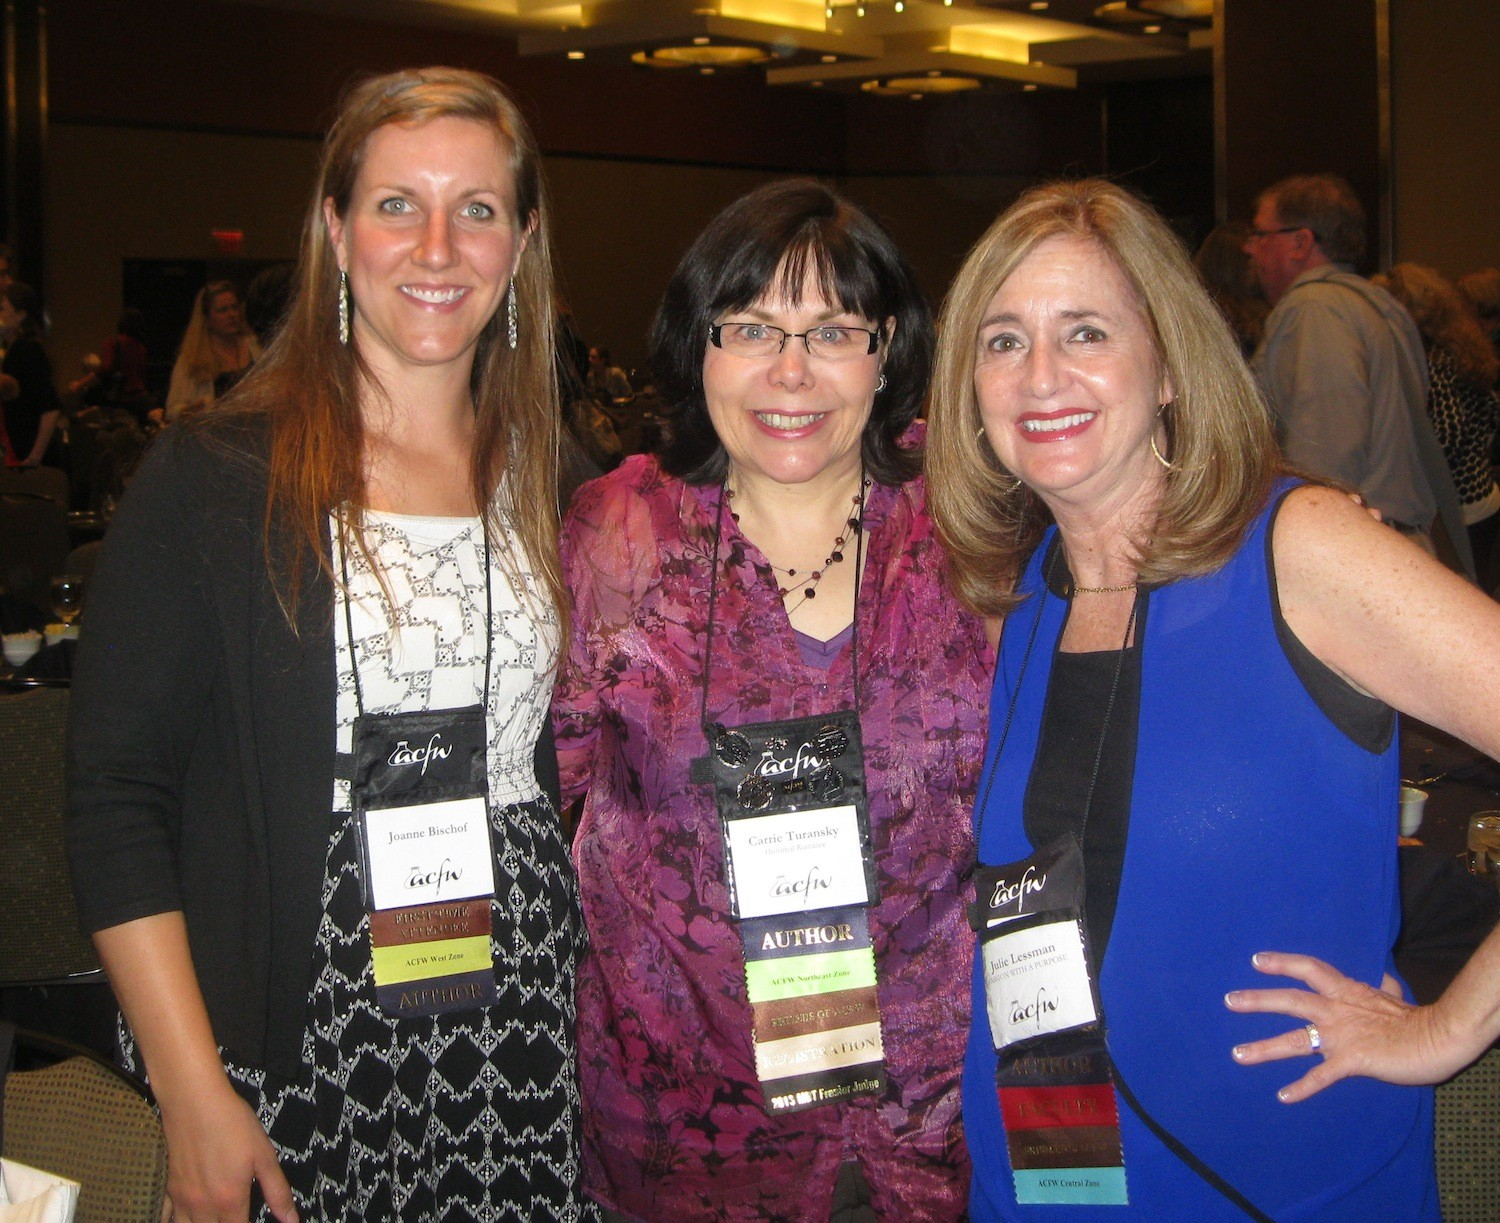 Joanne Bischof, Carrie, and Julie Lessman at ACFW 2013